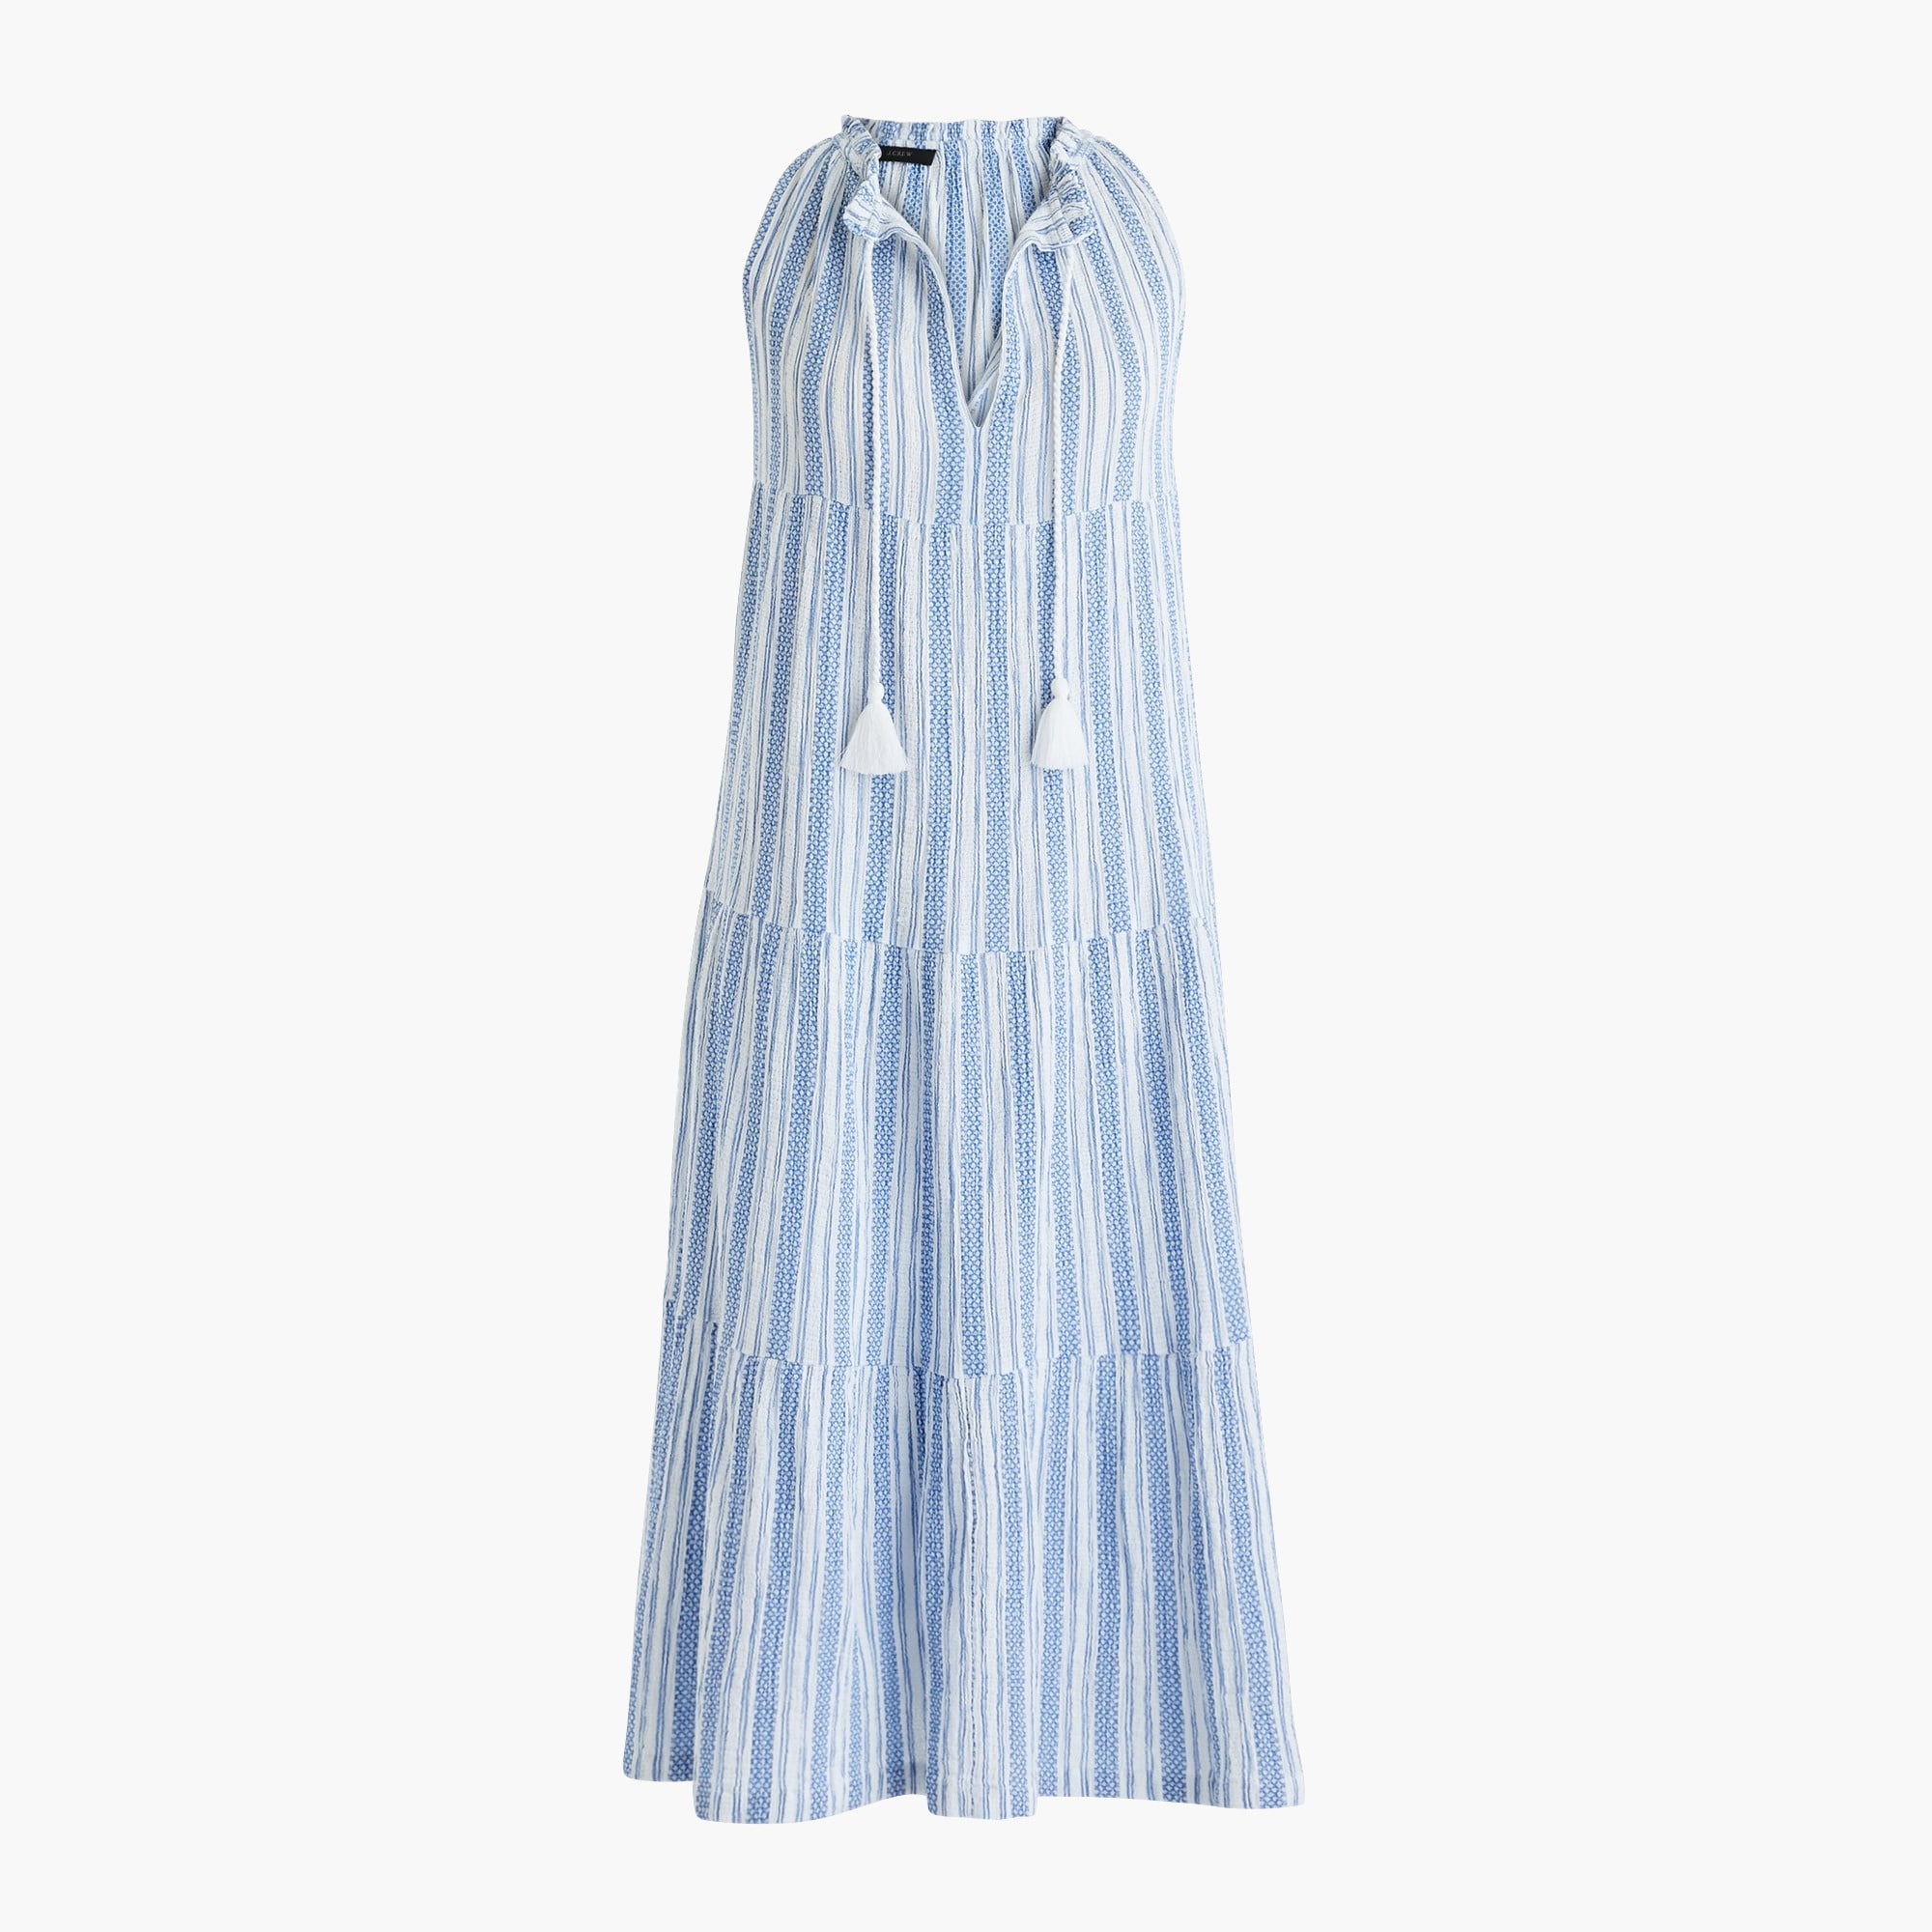 Tiered maxi dress in textured stripe